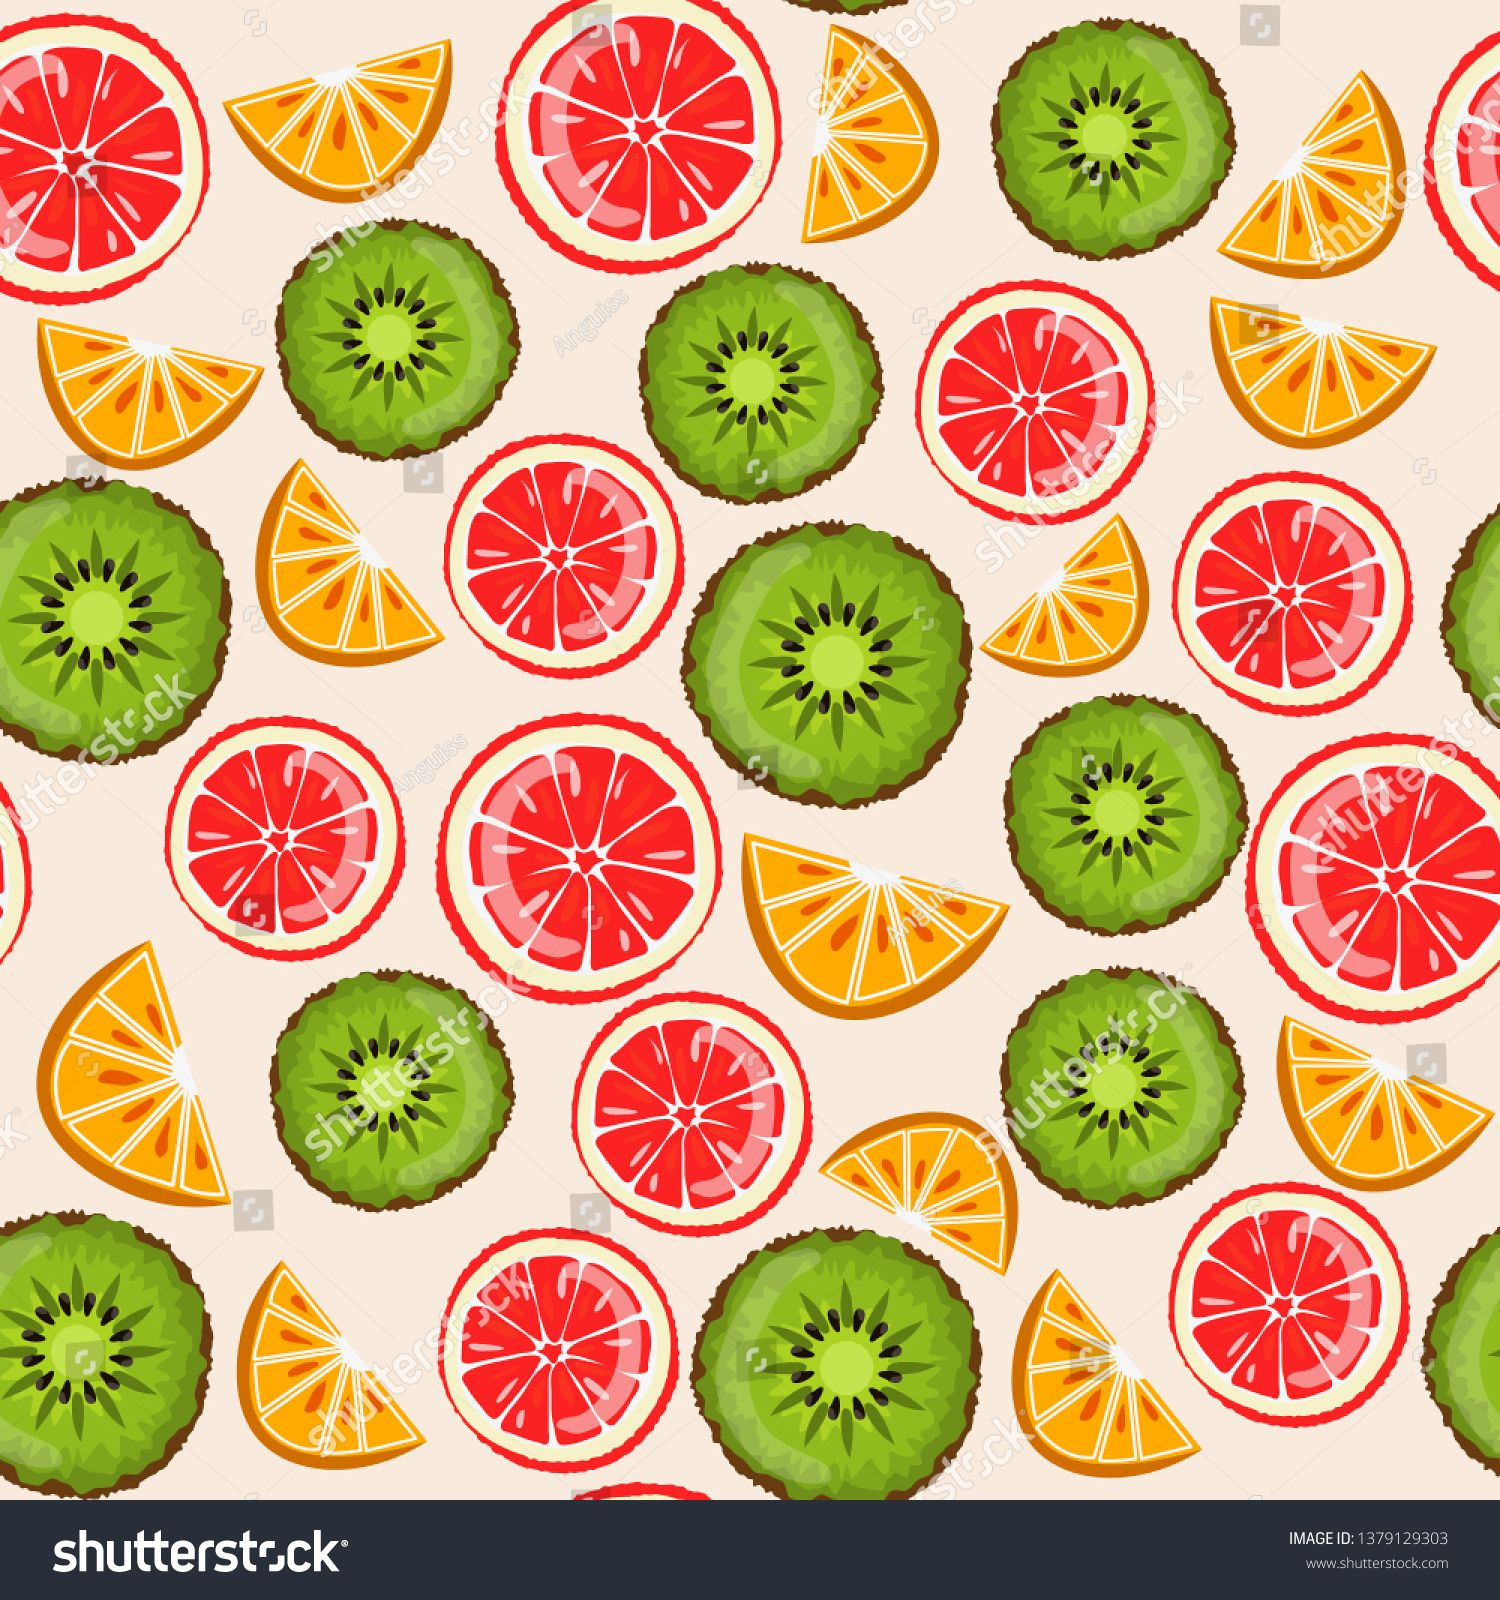 Summer pattern  #illustration #vectorillustration #vectorart #vectorartist #clipart #shutterstock #adobeillustrator #vectorgraphics #summer #summerpattern #seamlesspattern #fruits #fruitpattern